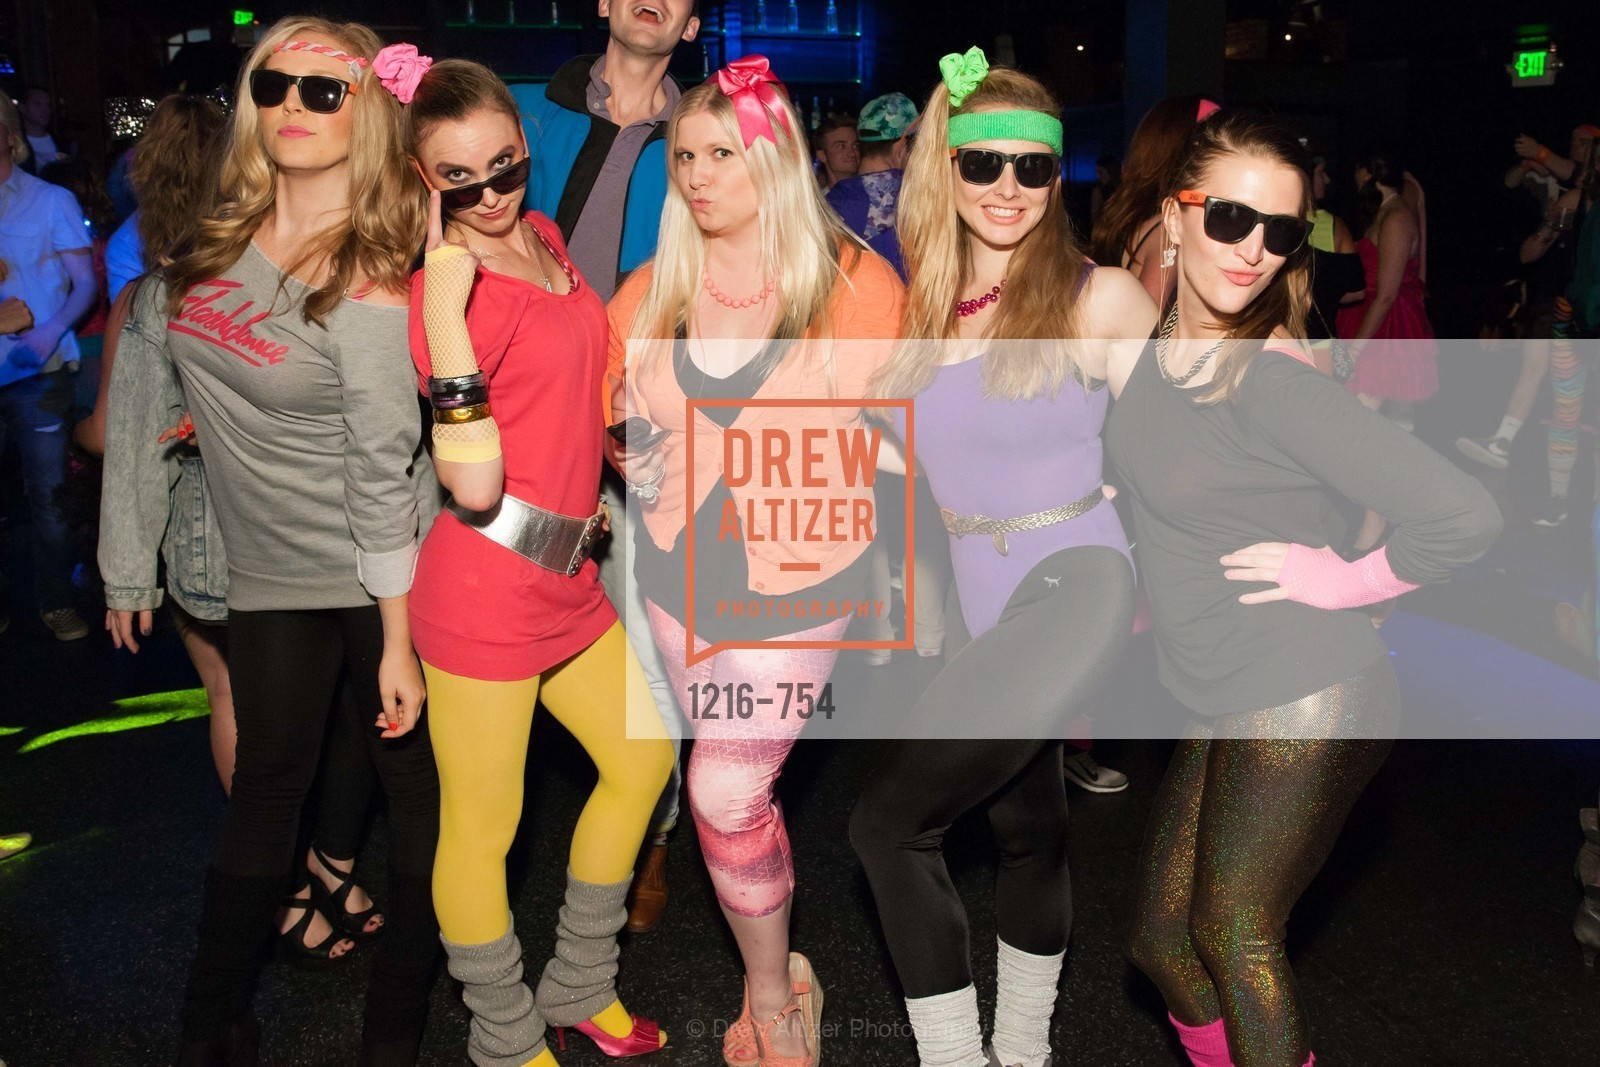 Cambria Steel, Michelle Bertino, Summer McCormick, Elizabeth Sgarrella, SPINSTERS OF SAN FRANCISCO Party Like It's 1985 Charity Party, US, Fort One Bar & Lounge. 2801 Leavenworth St, May 30th, 2015,Drew Altizer, Drew Altizer Photography, full-service agency, private events, San Francisco photographer, photographer california